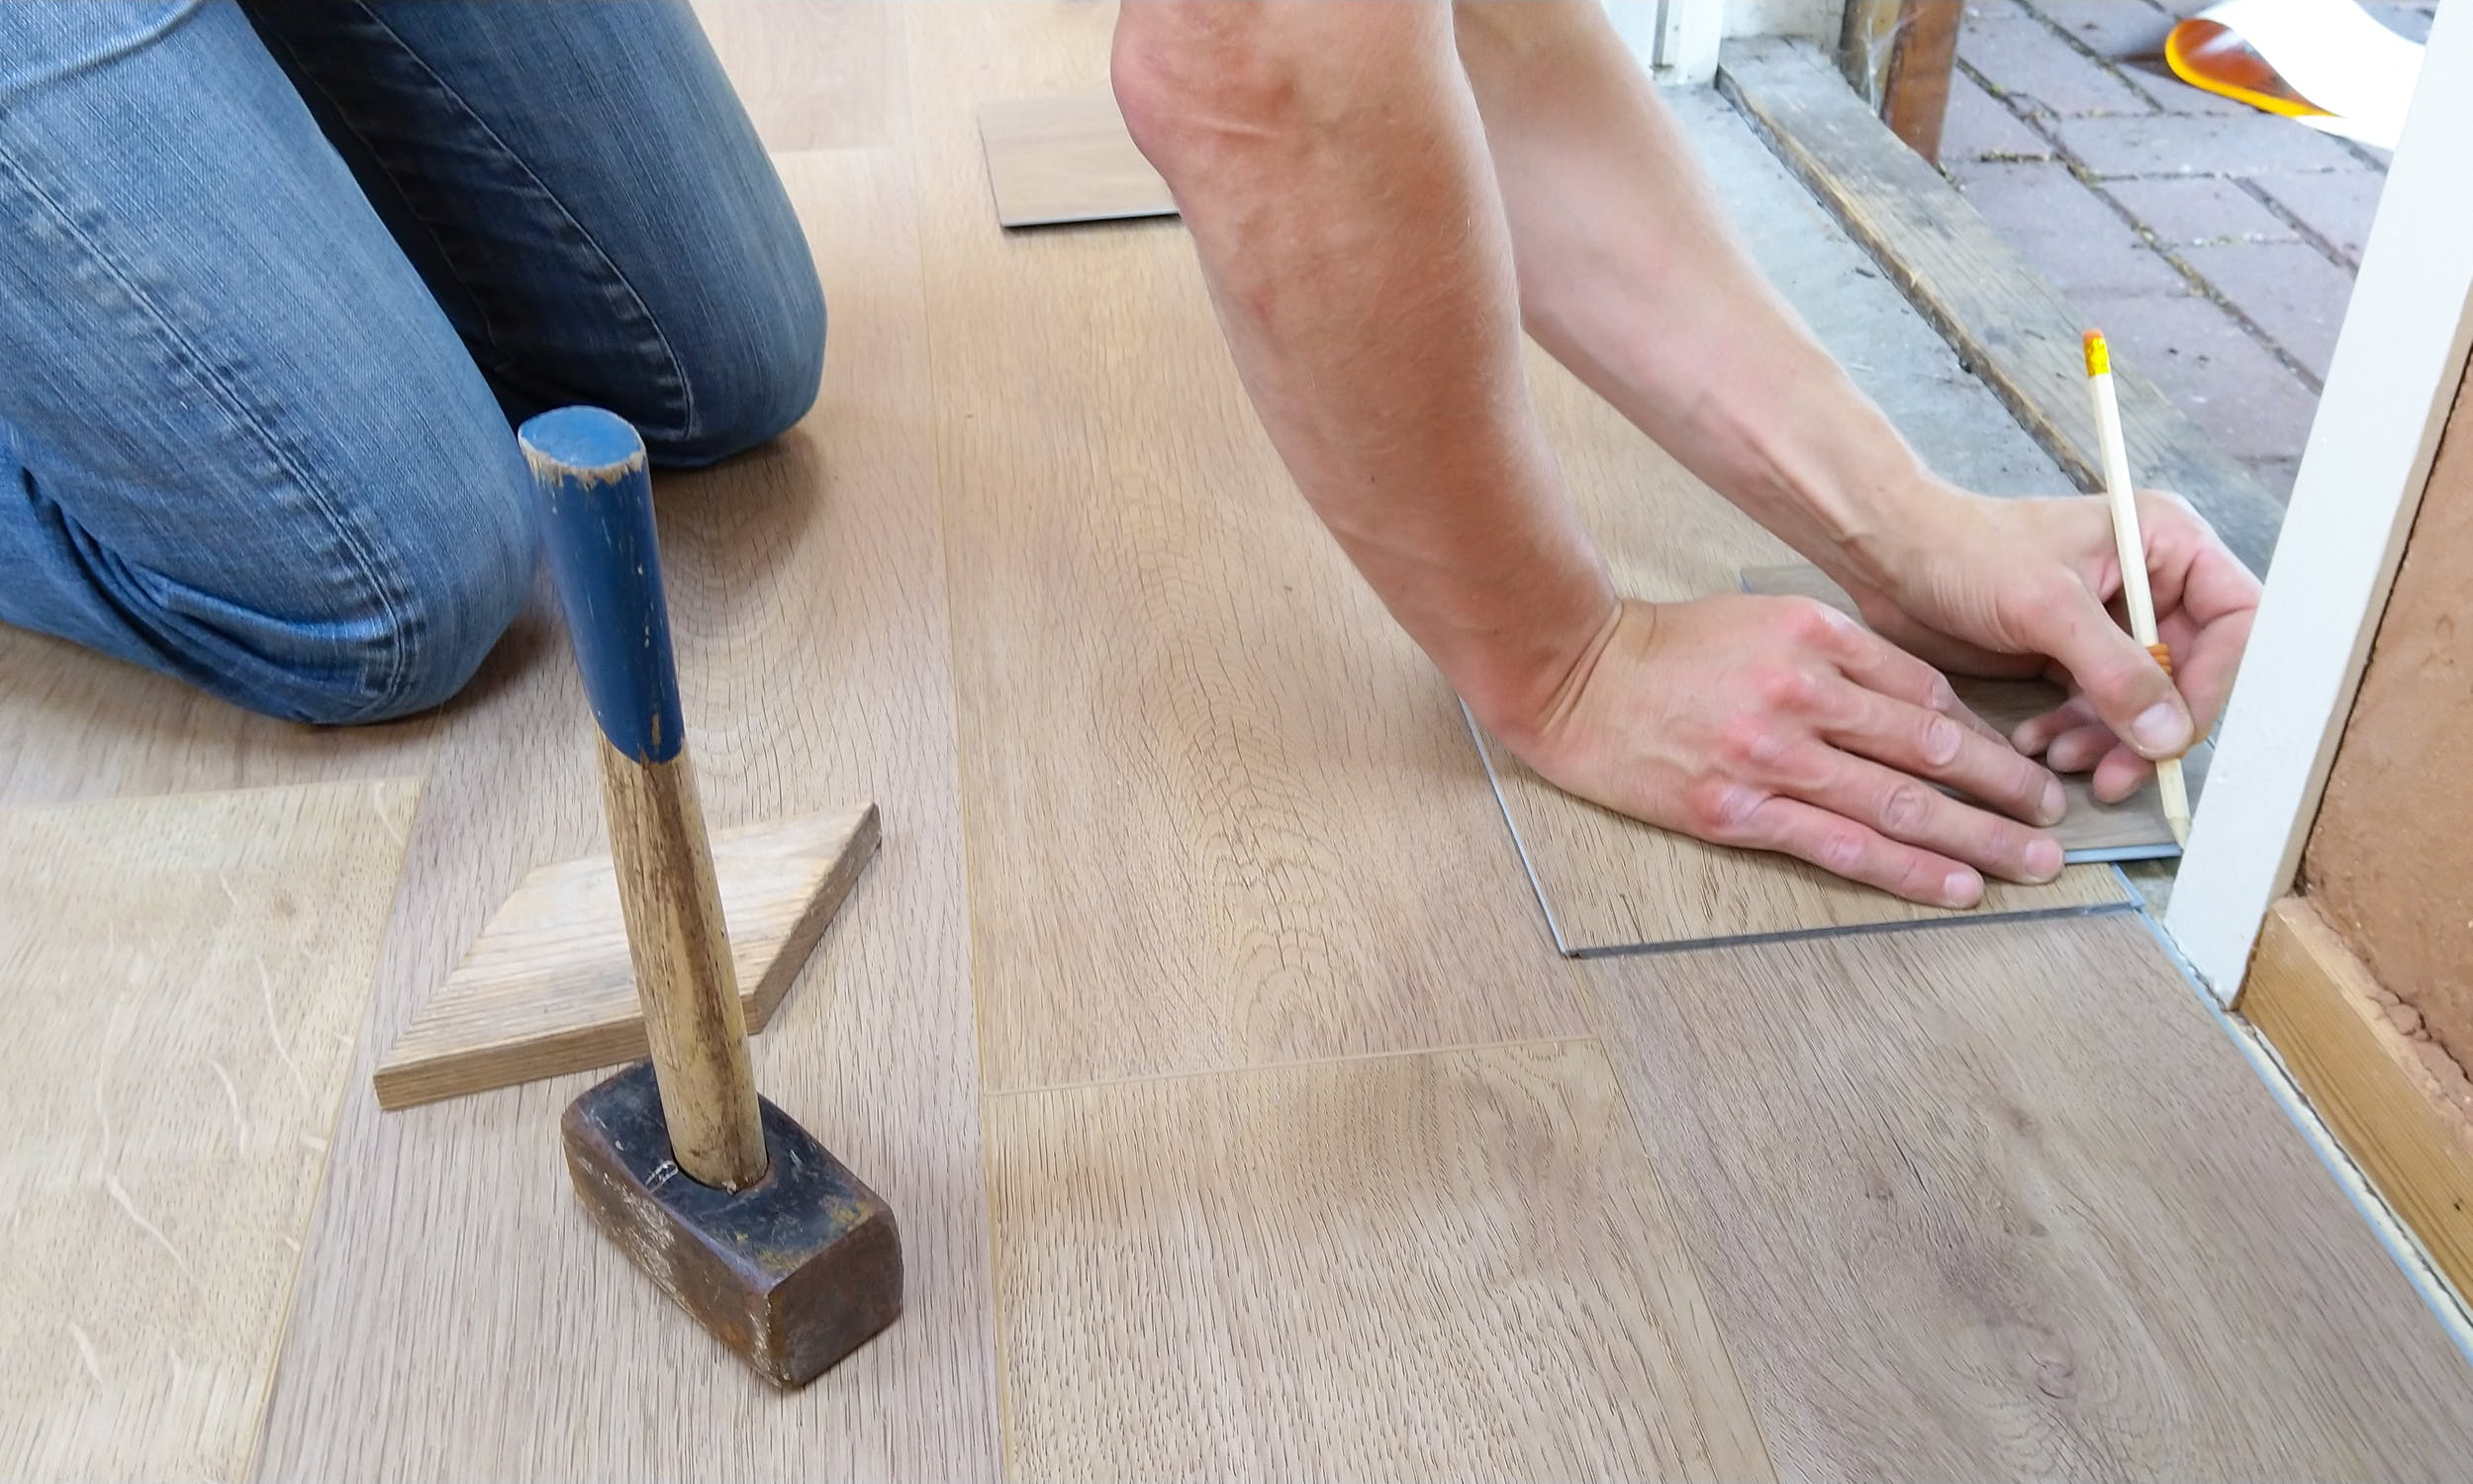 How to Pick Great Flooring for Home Improvement